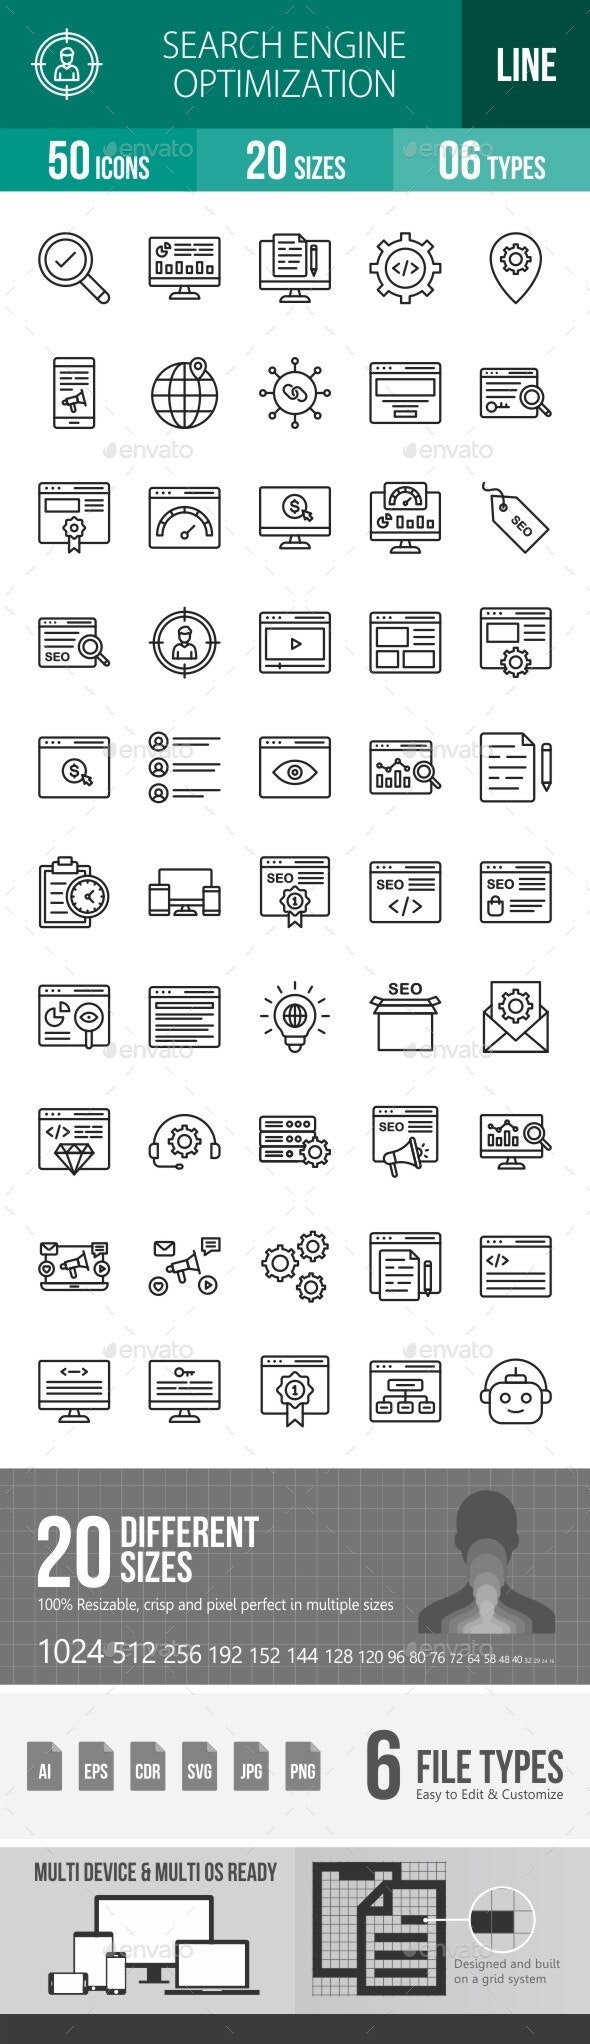 Search Engine Optimization Line Icons - Icons